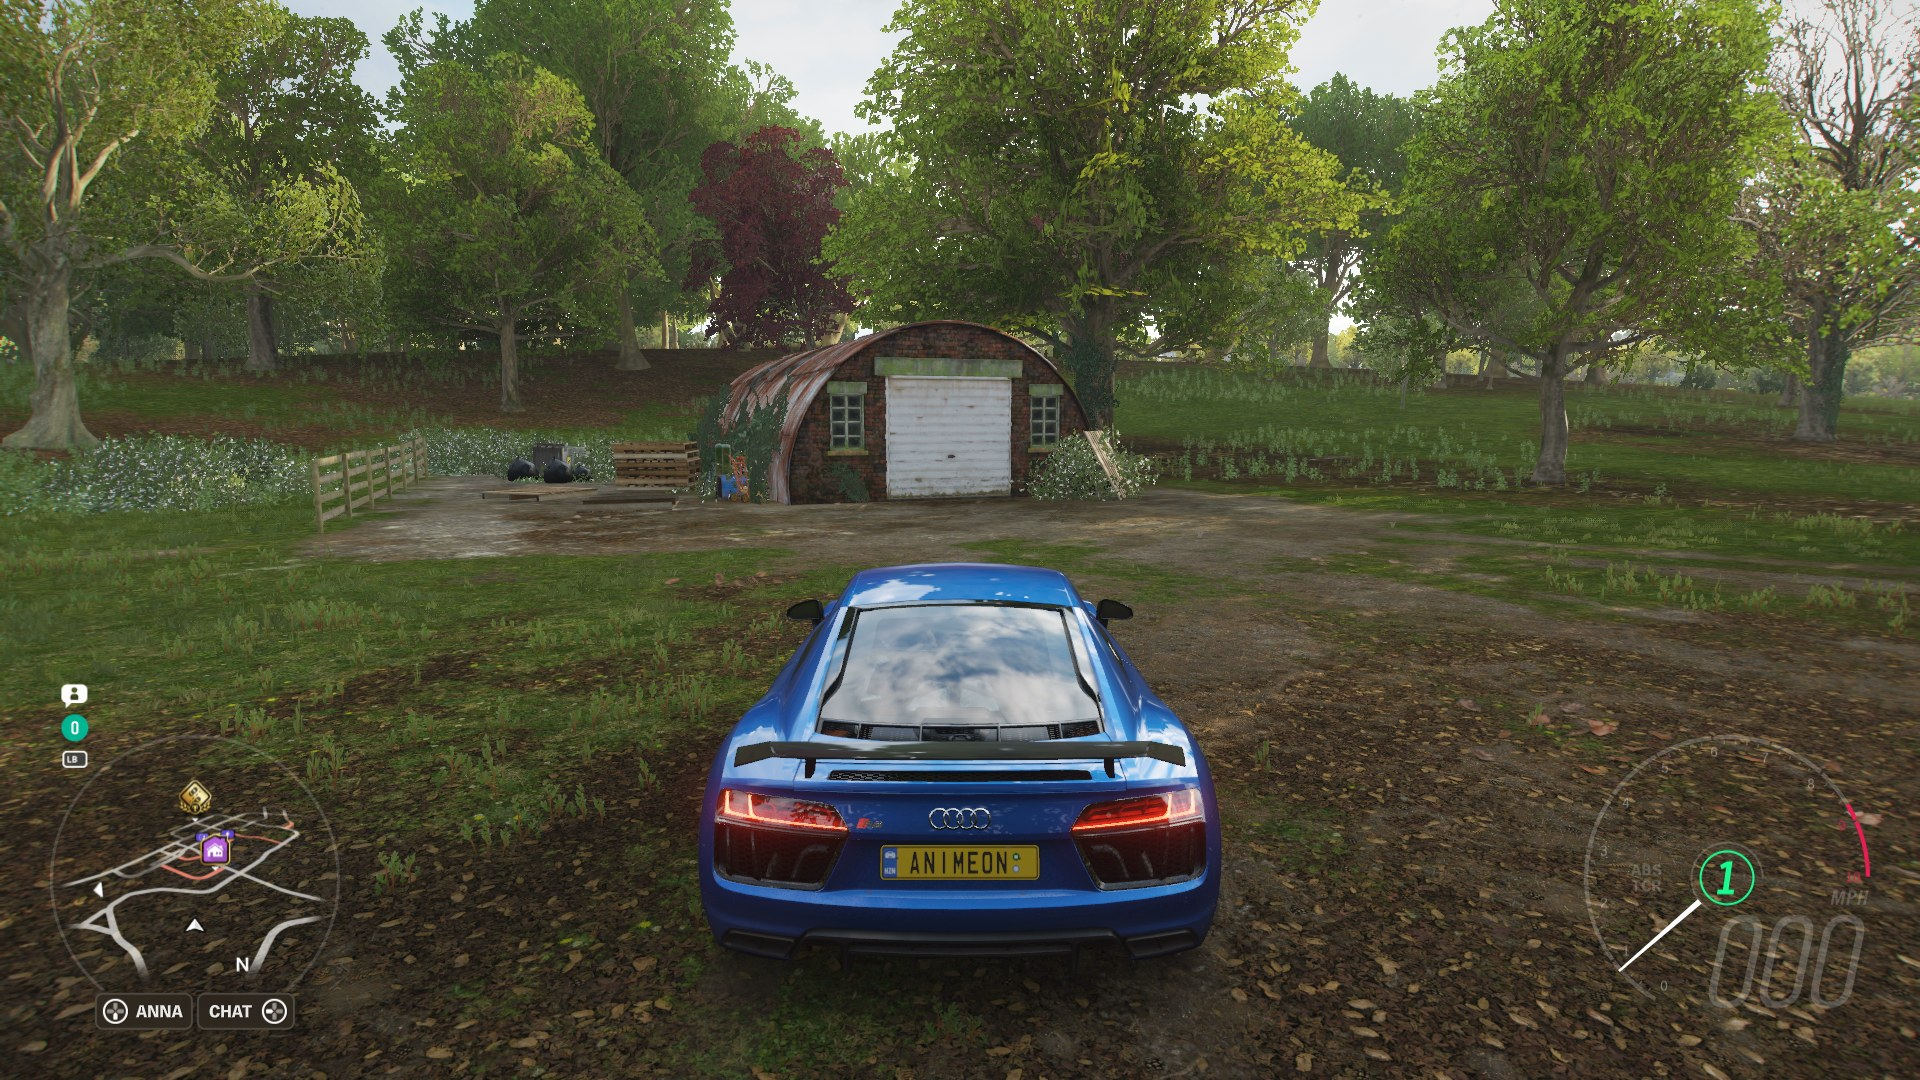 Forza Horizon 4 Barn Finds Locations Find Every Forza Horizon 4 Barn Location Plus Seasonal Barn Finds Usgamer